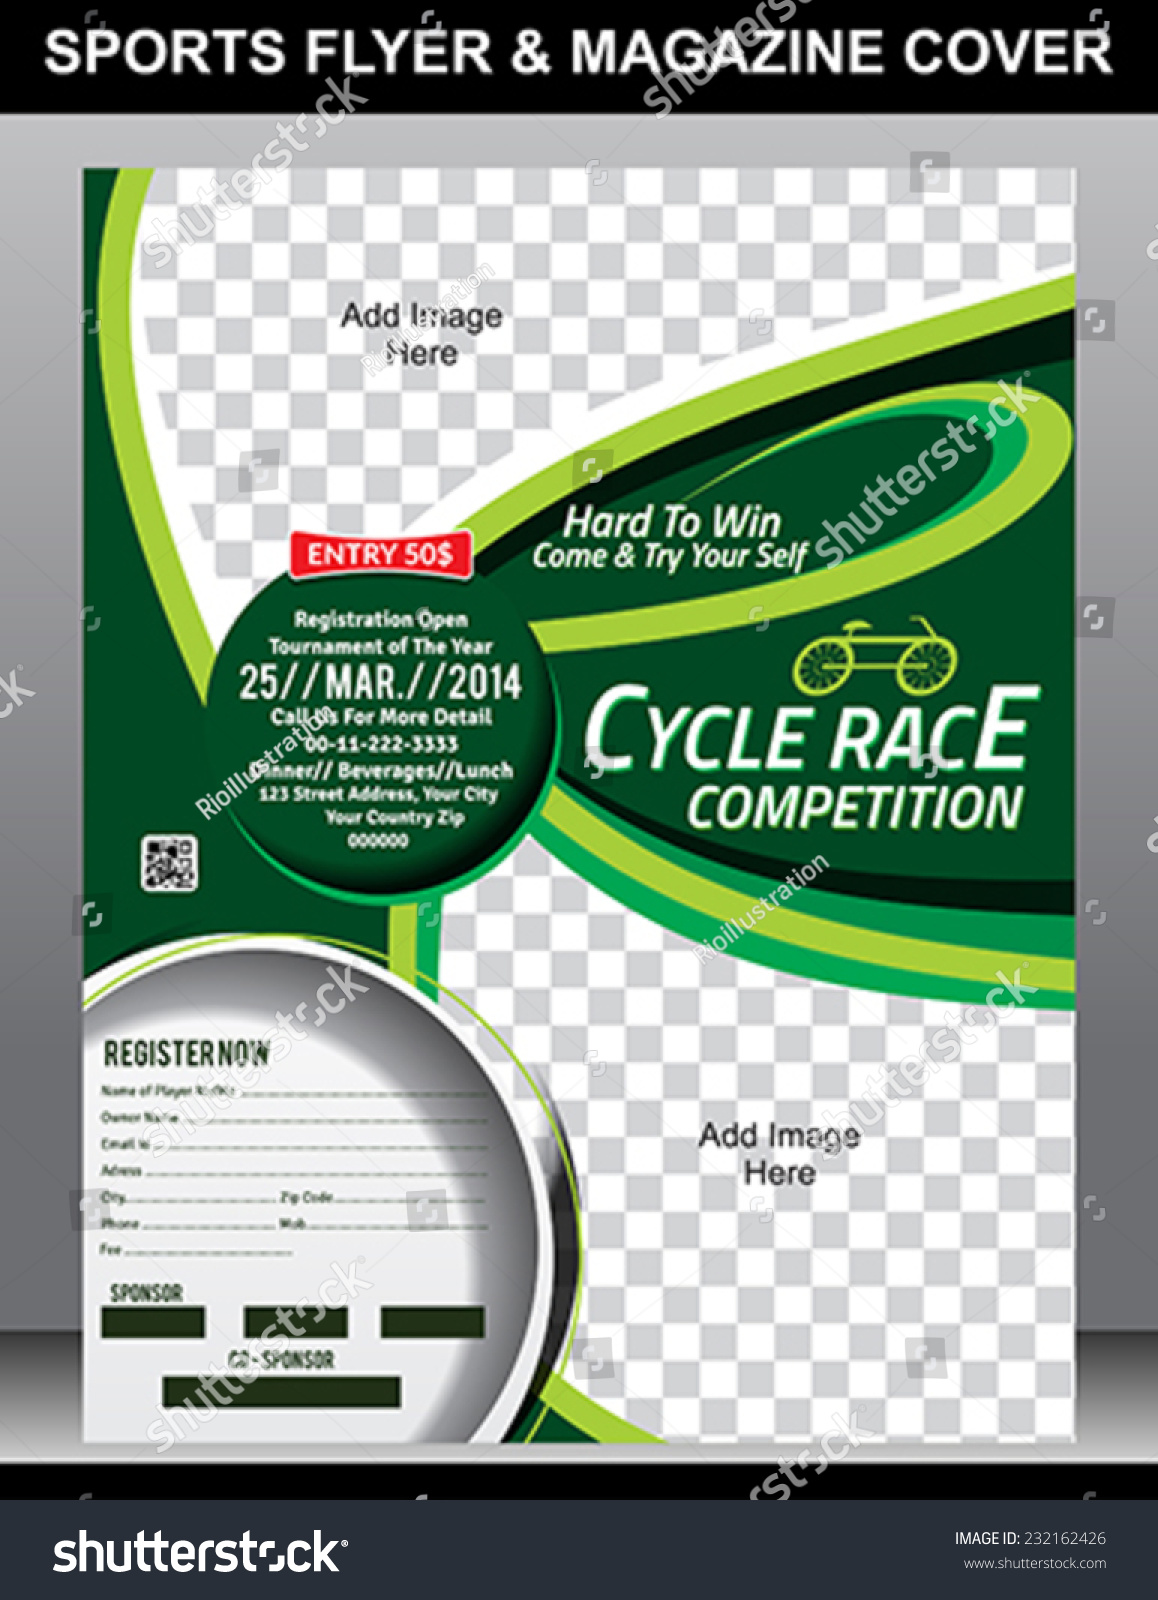 Free Sports Flyer Templates rent receipt format free download – Sports Flyers Templates Free